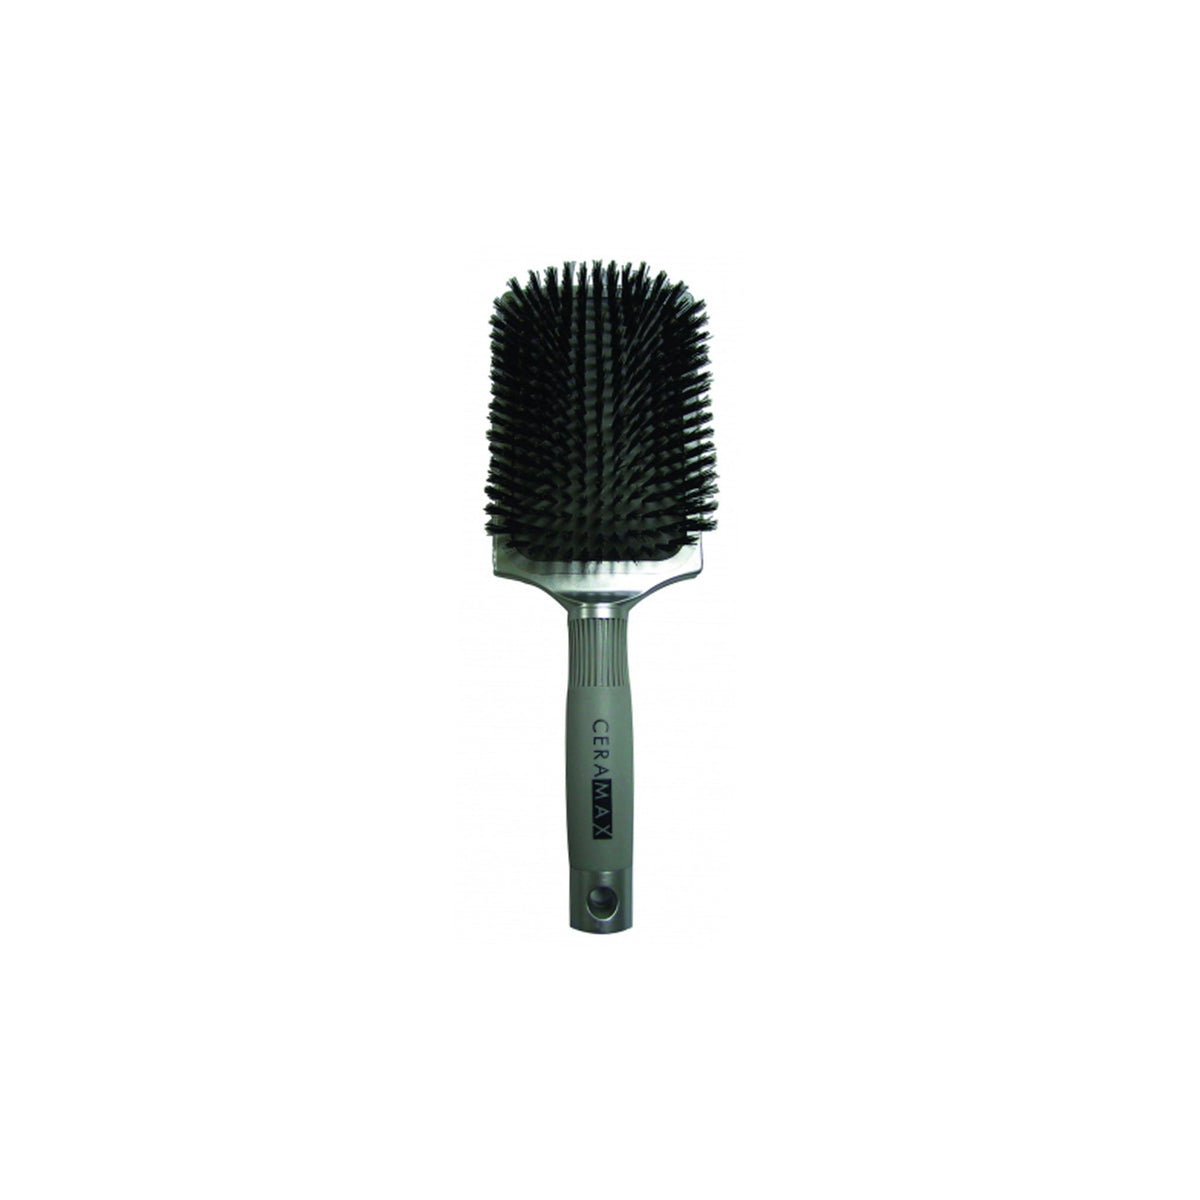 Ceramax 100% Boar Bristle Ionic Antibacterial Paddle Brush